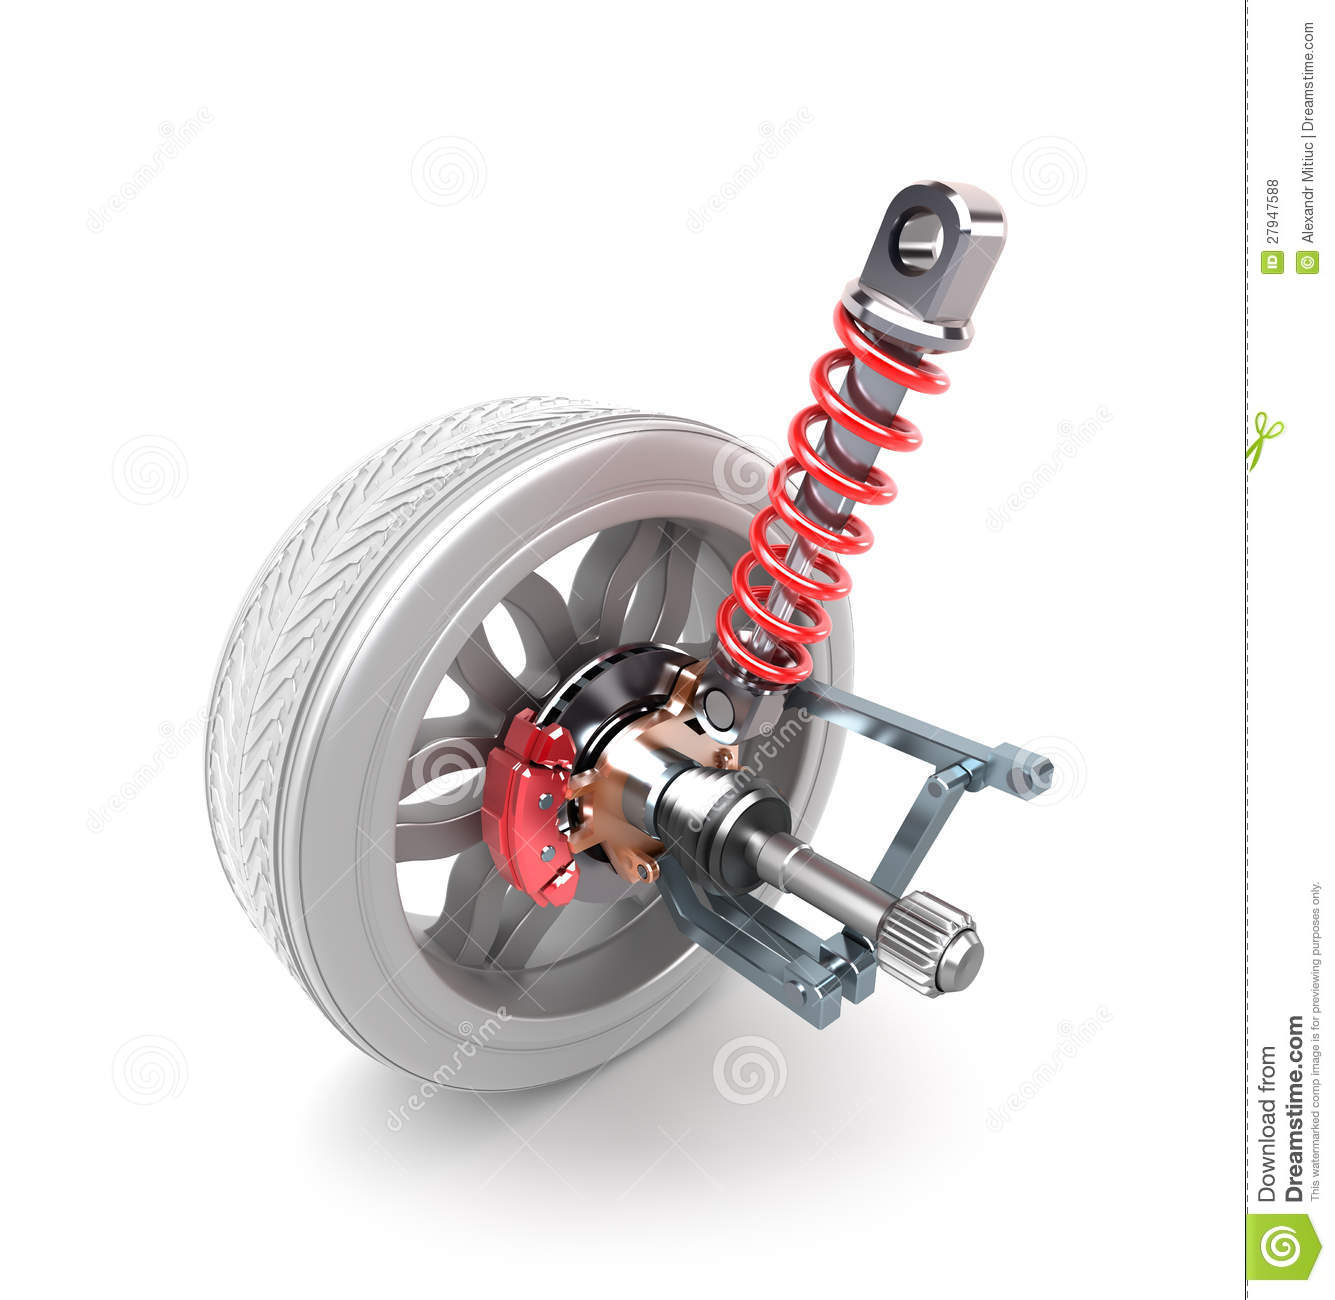 Wheel, shock absorber and